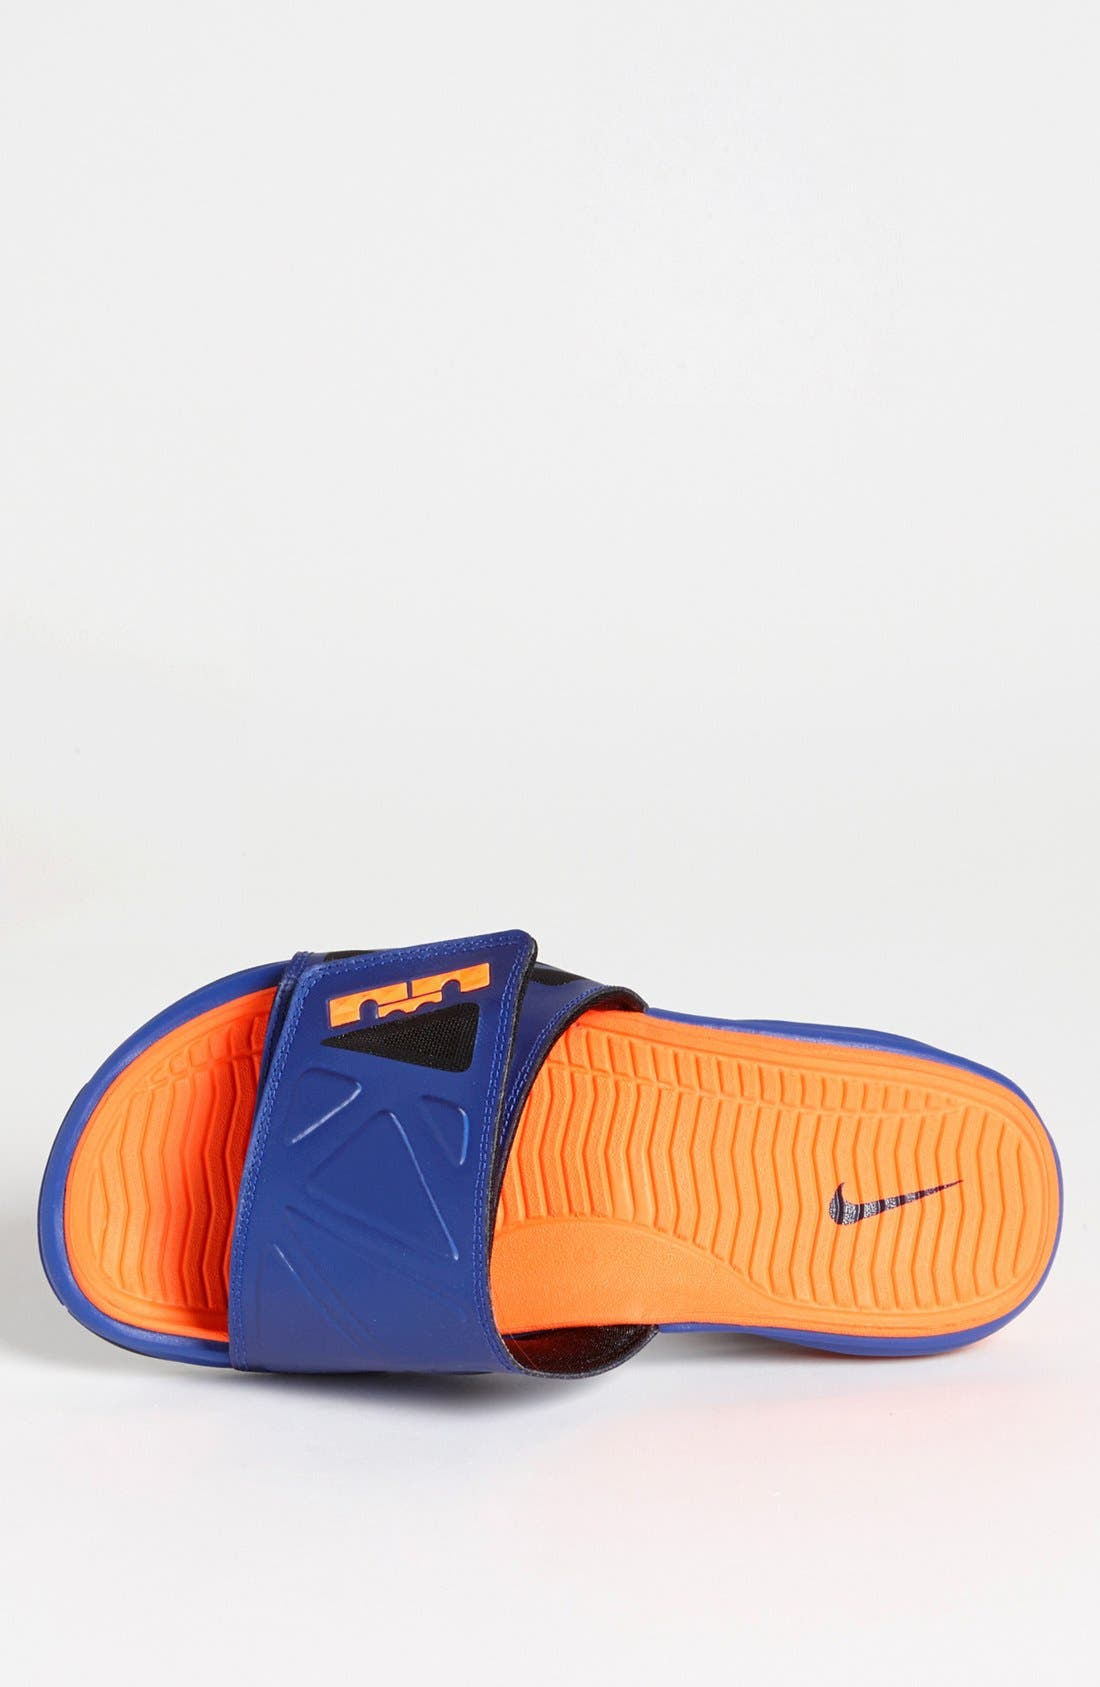 Alternate Image 3  - Nike 'Air LeBron 2 Slide Elite' Sandal (Men)